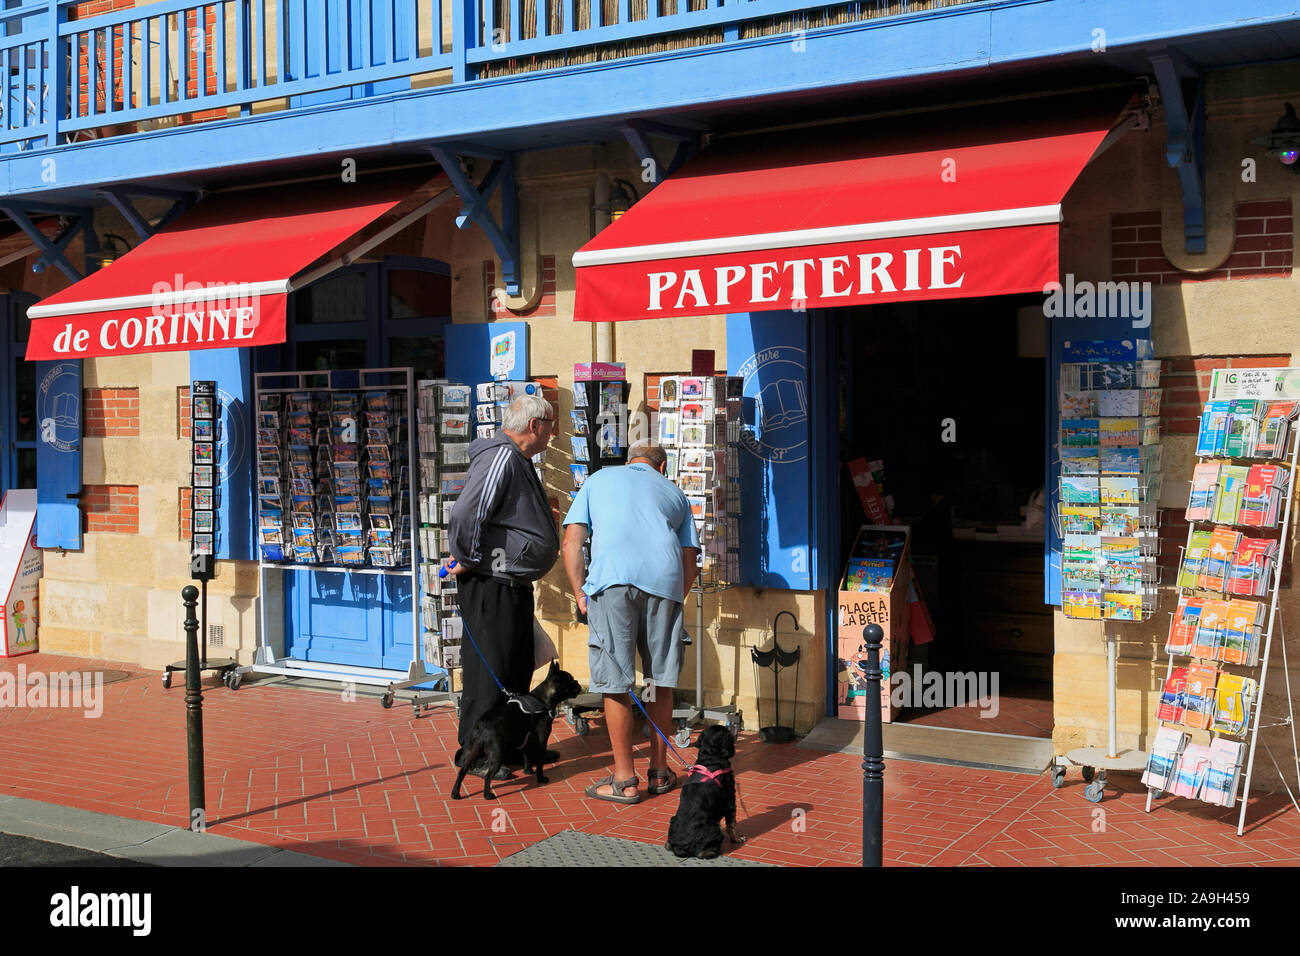 Store in Soulac-sur-Mer, Medoc Atlantique, France Stock Photo